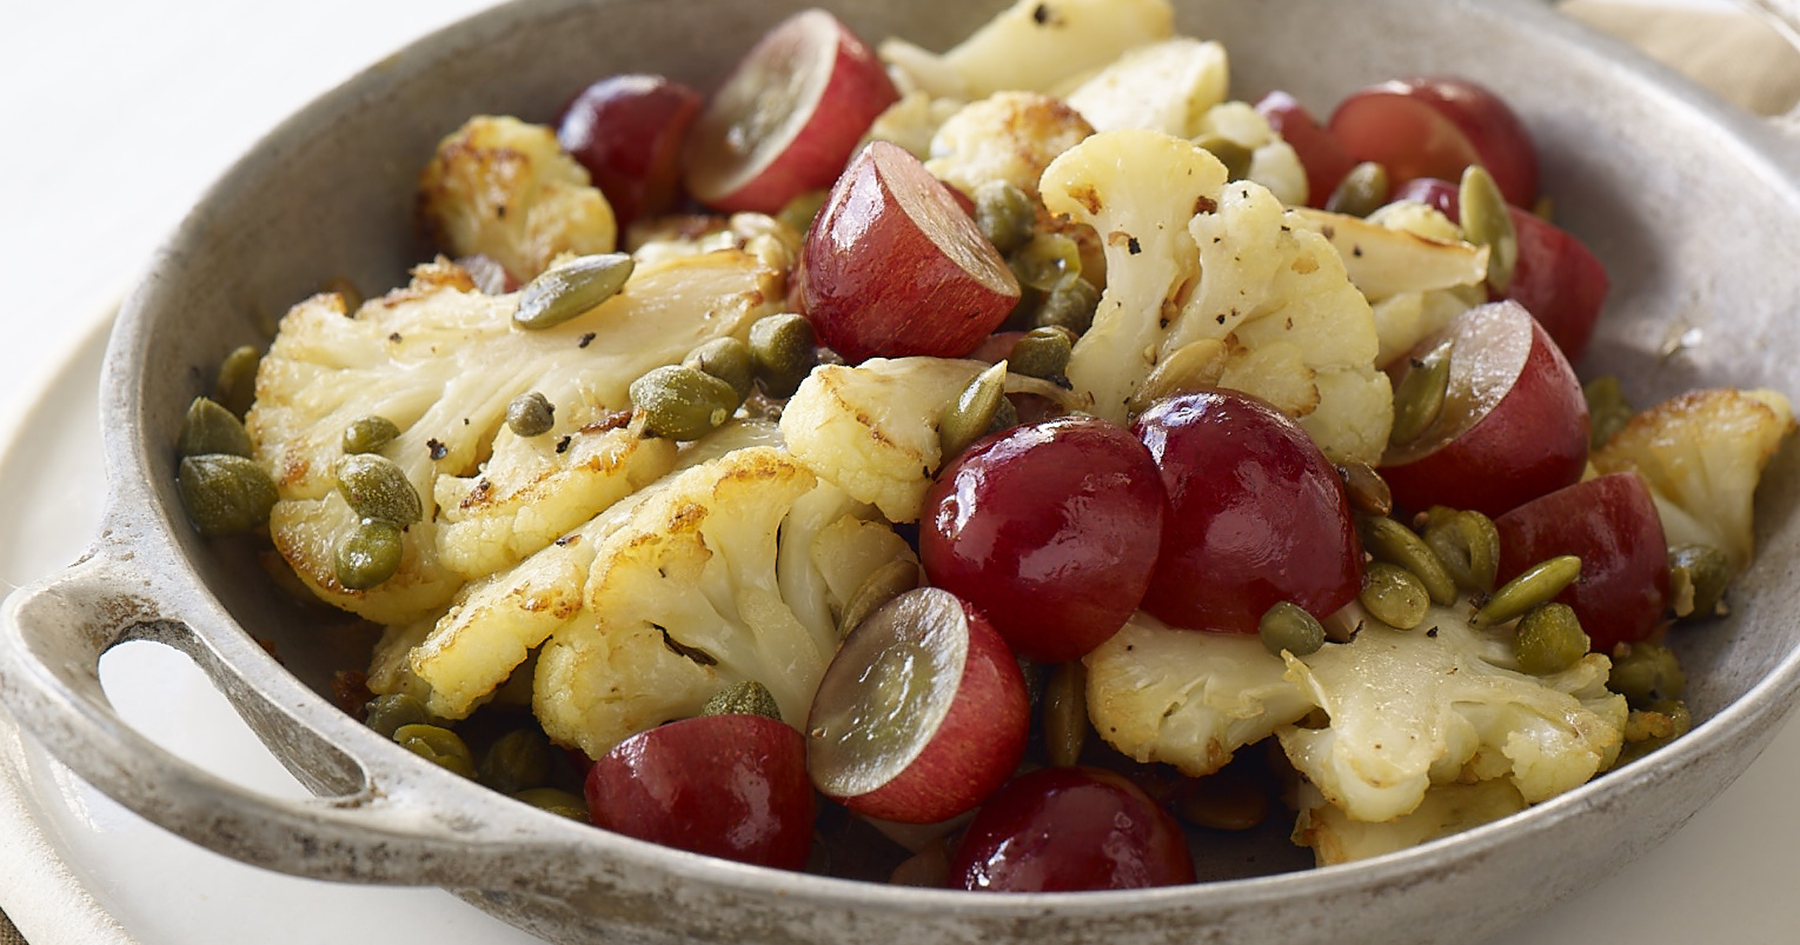 Roasted Cauliflower with Red Grapes